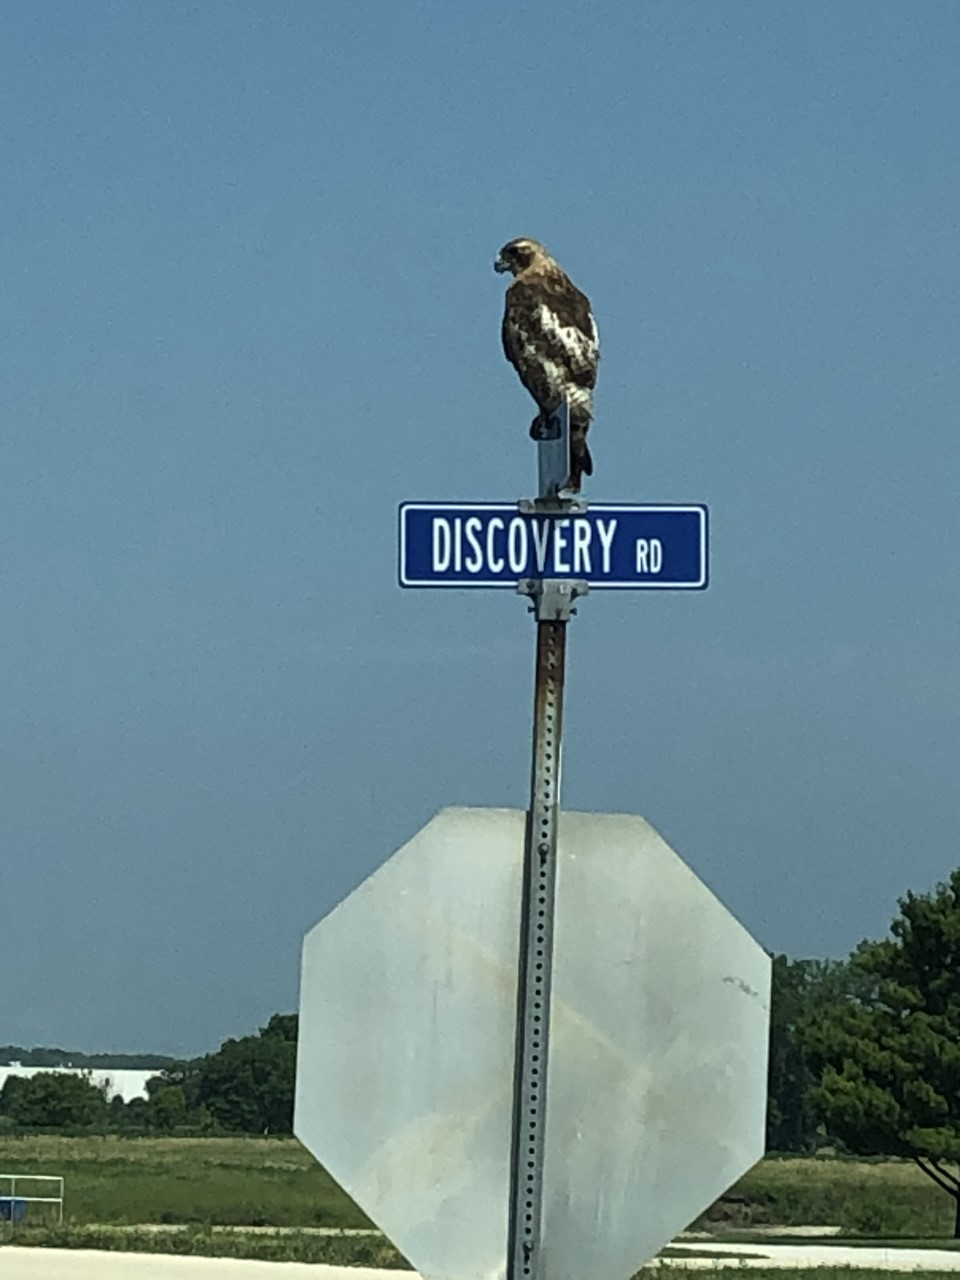 A hawk hangs out at the corner of Discovery and Eola. nature, wildlife, animal, bird, hawk Photo: Dan McKinley